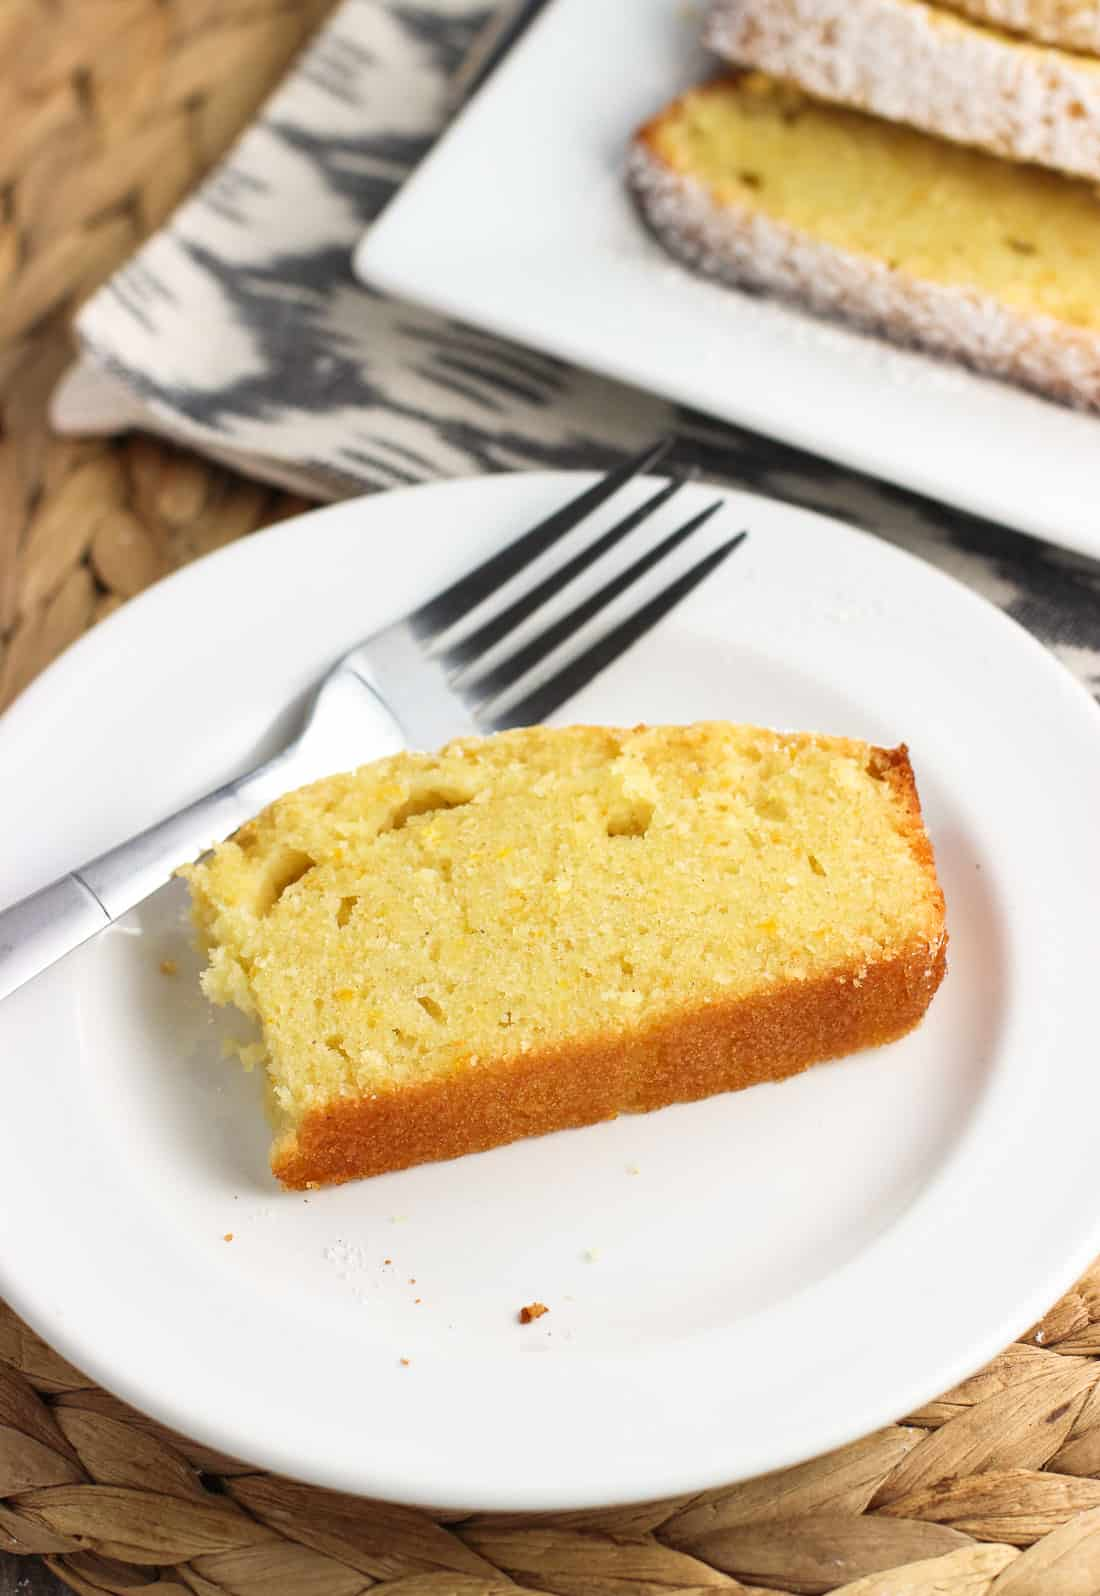 A simple orange pound cake recipe is spiced with nutmeg and dusted with a confectioners' sugar and cinnamon mixture for a warm touch to a classic dessert.